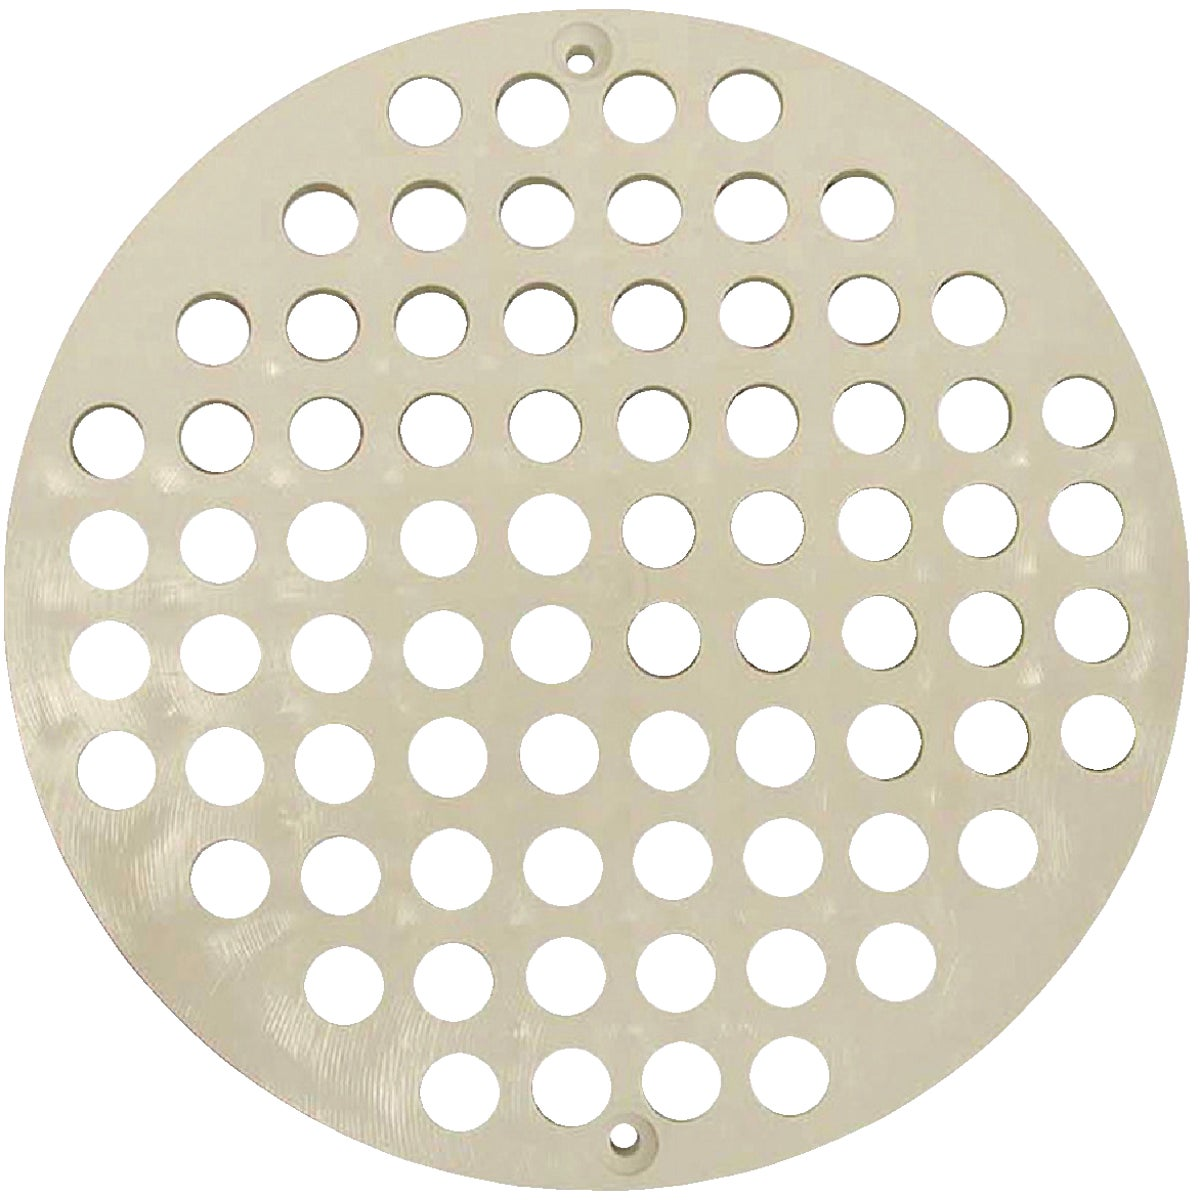 PVC REPLACEMENT GRATE - D50-202 by Jones Stephens Corp